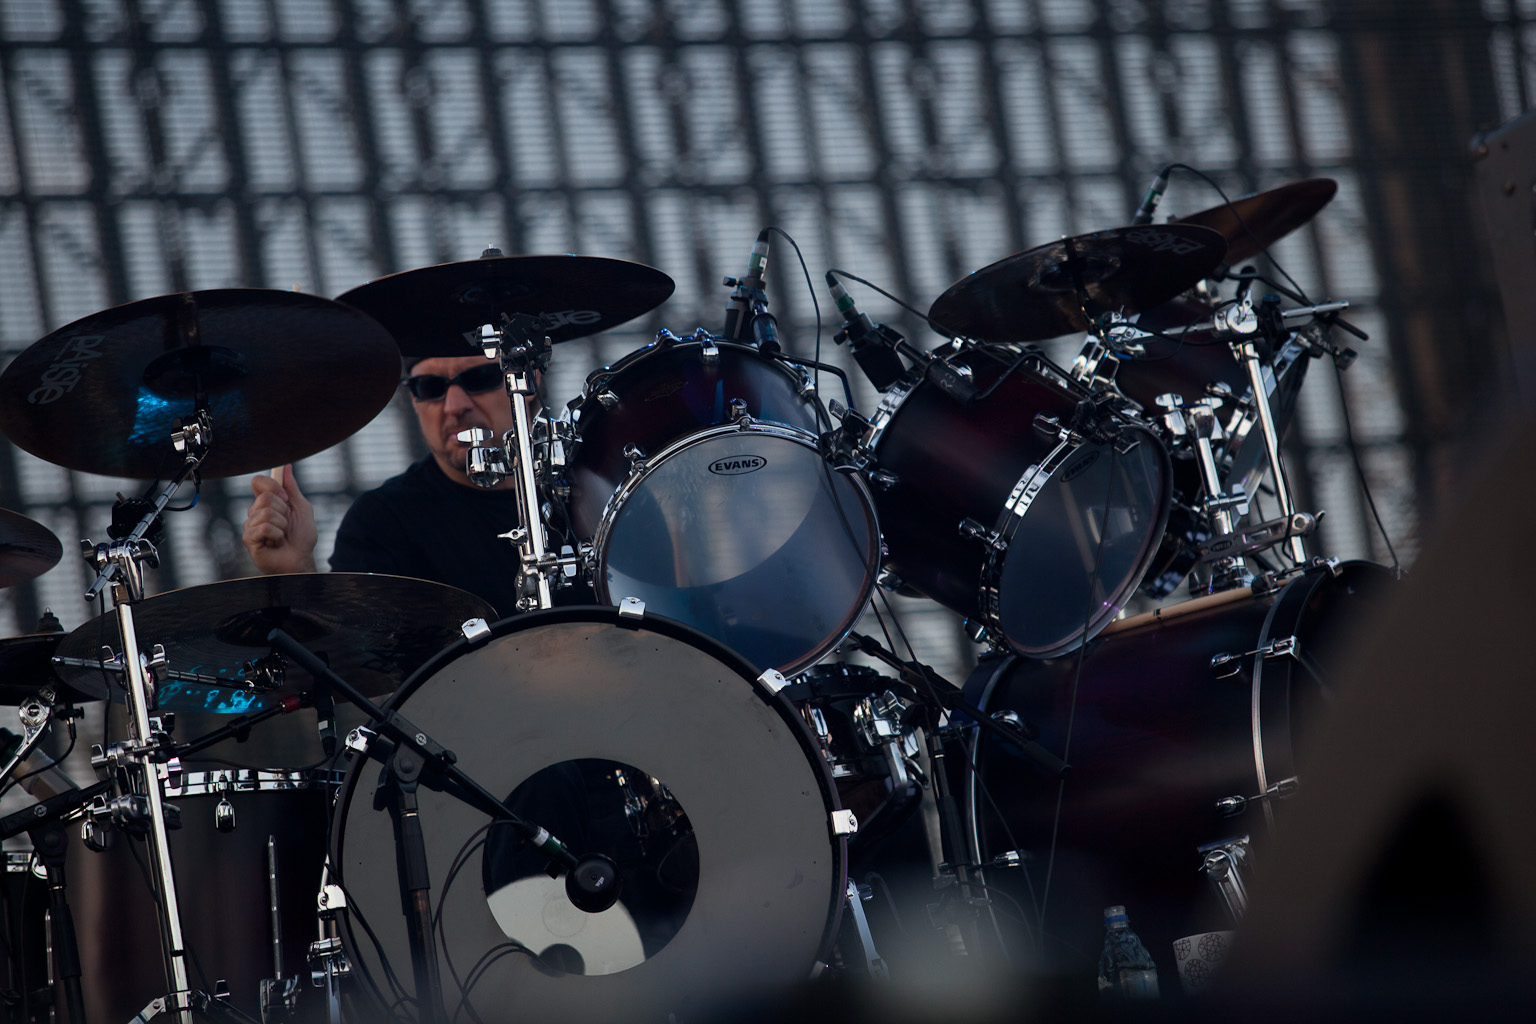 Original Misfits Announce Dave Lombardo of Slayer as Live Drummer At Riot Fest Appearances